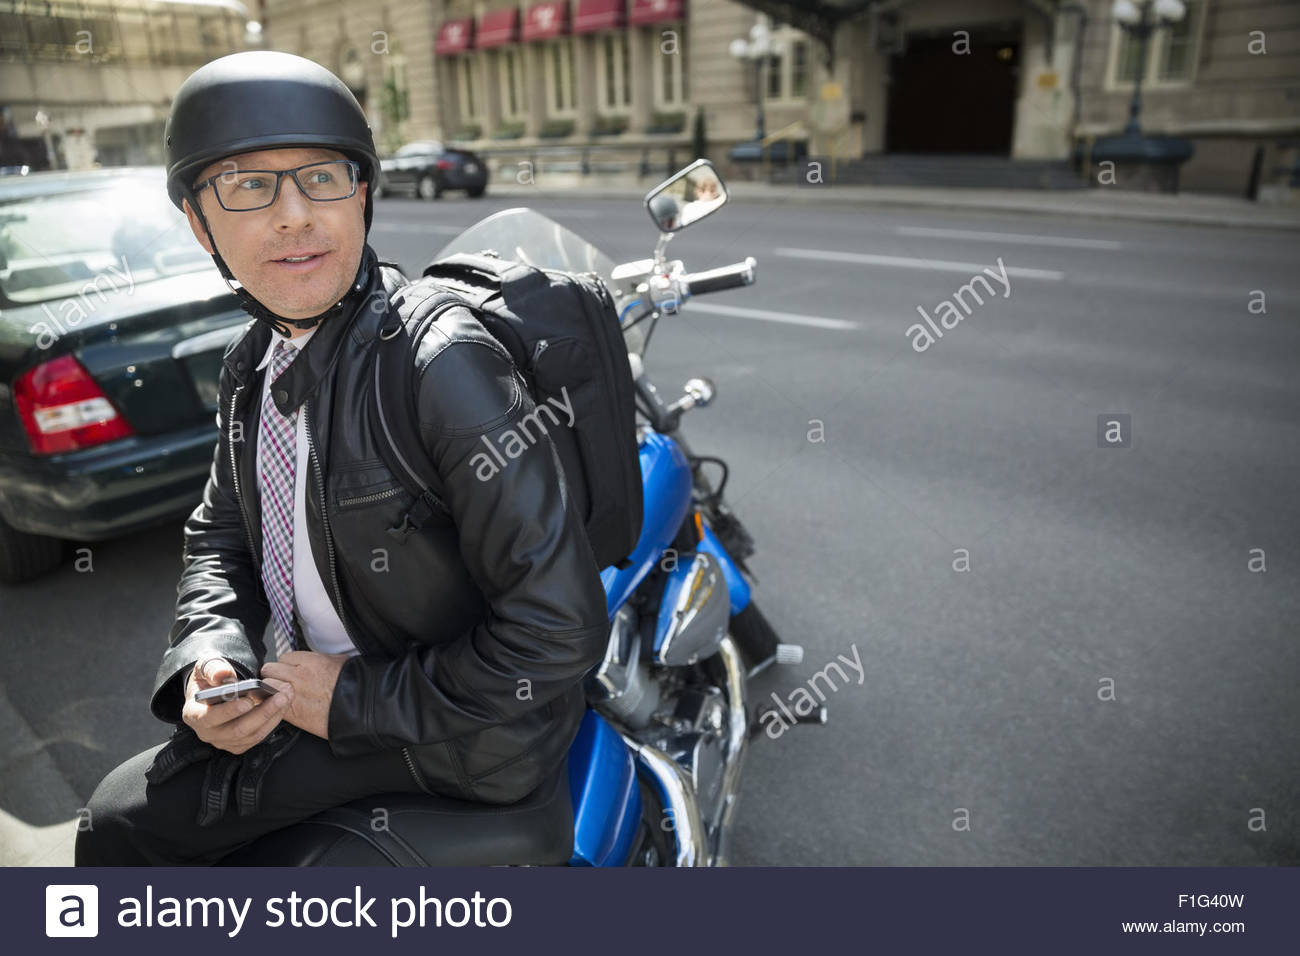 Businessman commuting on motorcycle - Stock Image